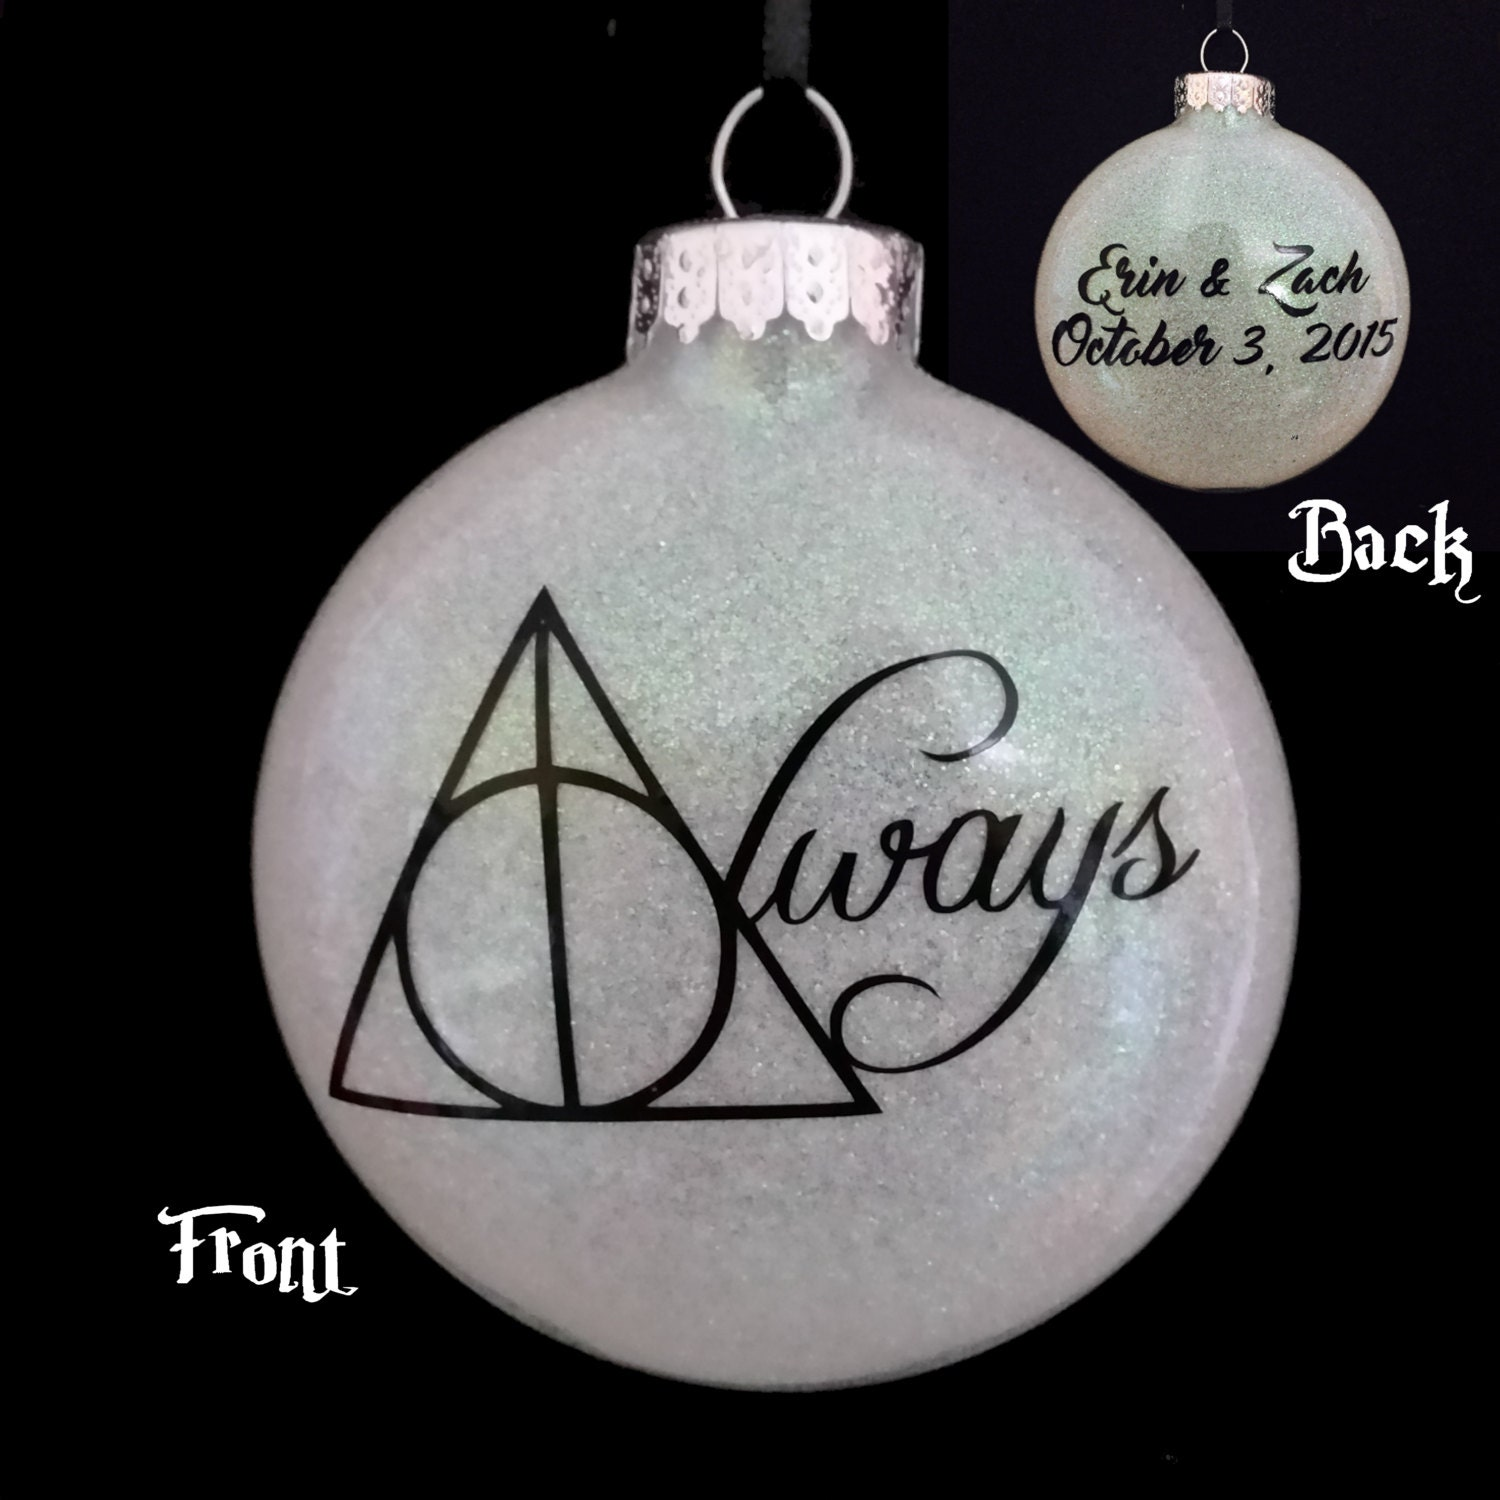 Personalized wedding christmas ornament - Customized Harry Potter Ornament Always Great Valentine S Day Wedding Anniversary Gift